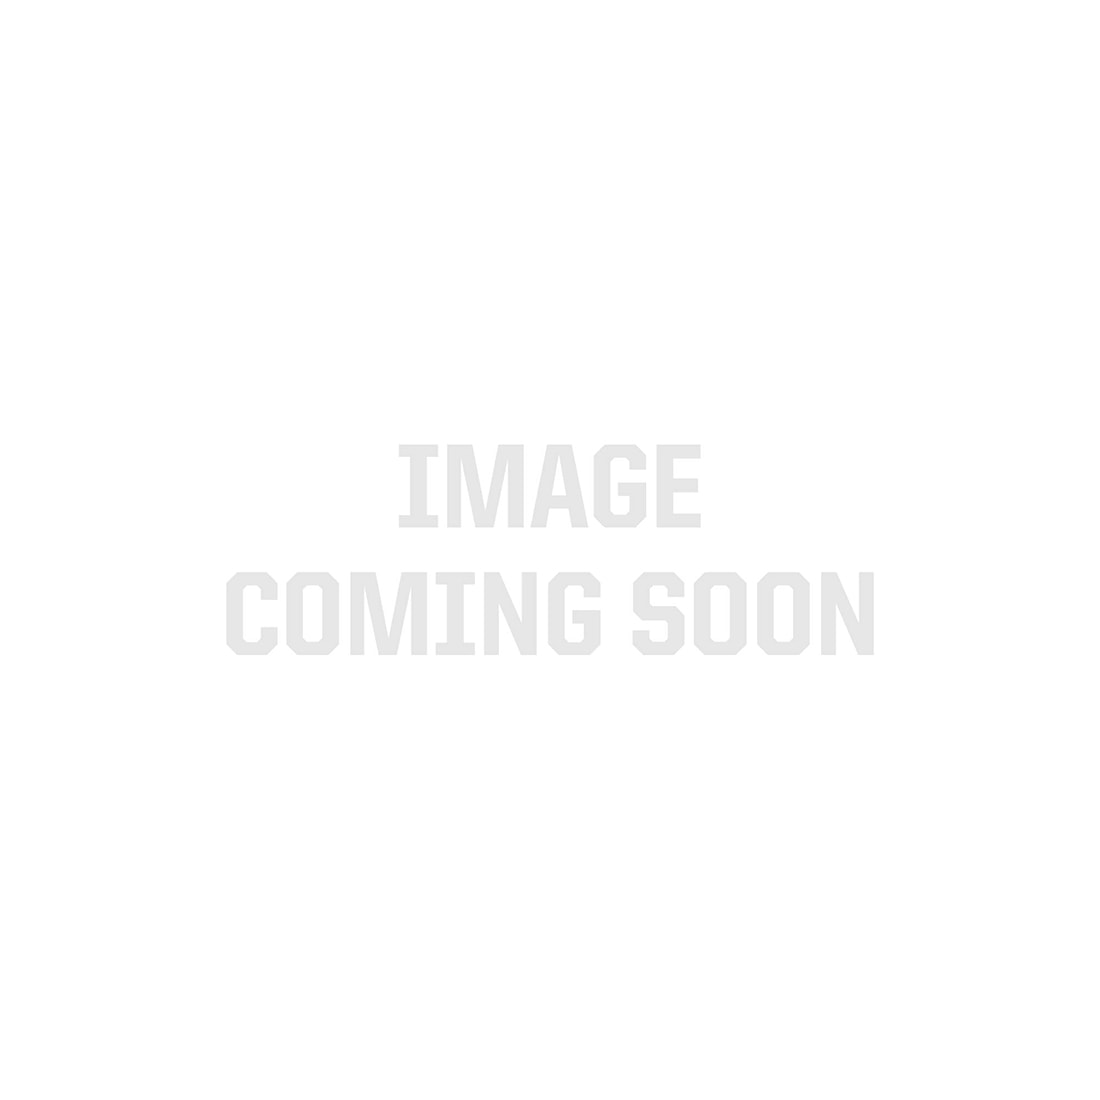 EL S25 Adjustable Angle Aluminum Channel (Anodized)